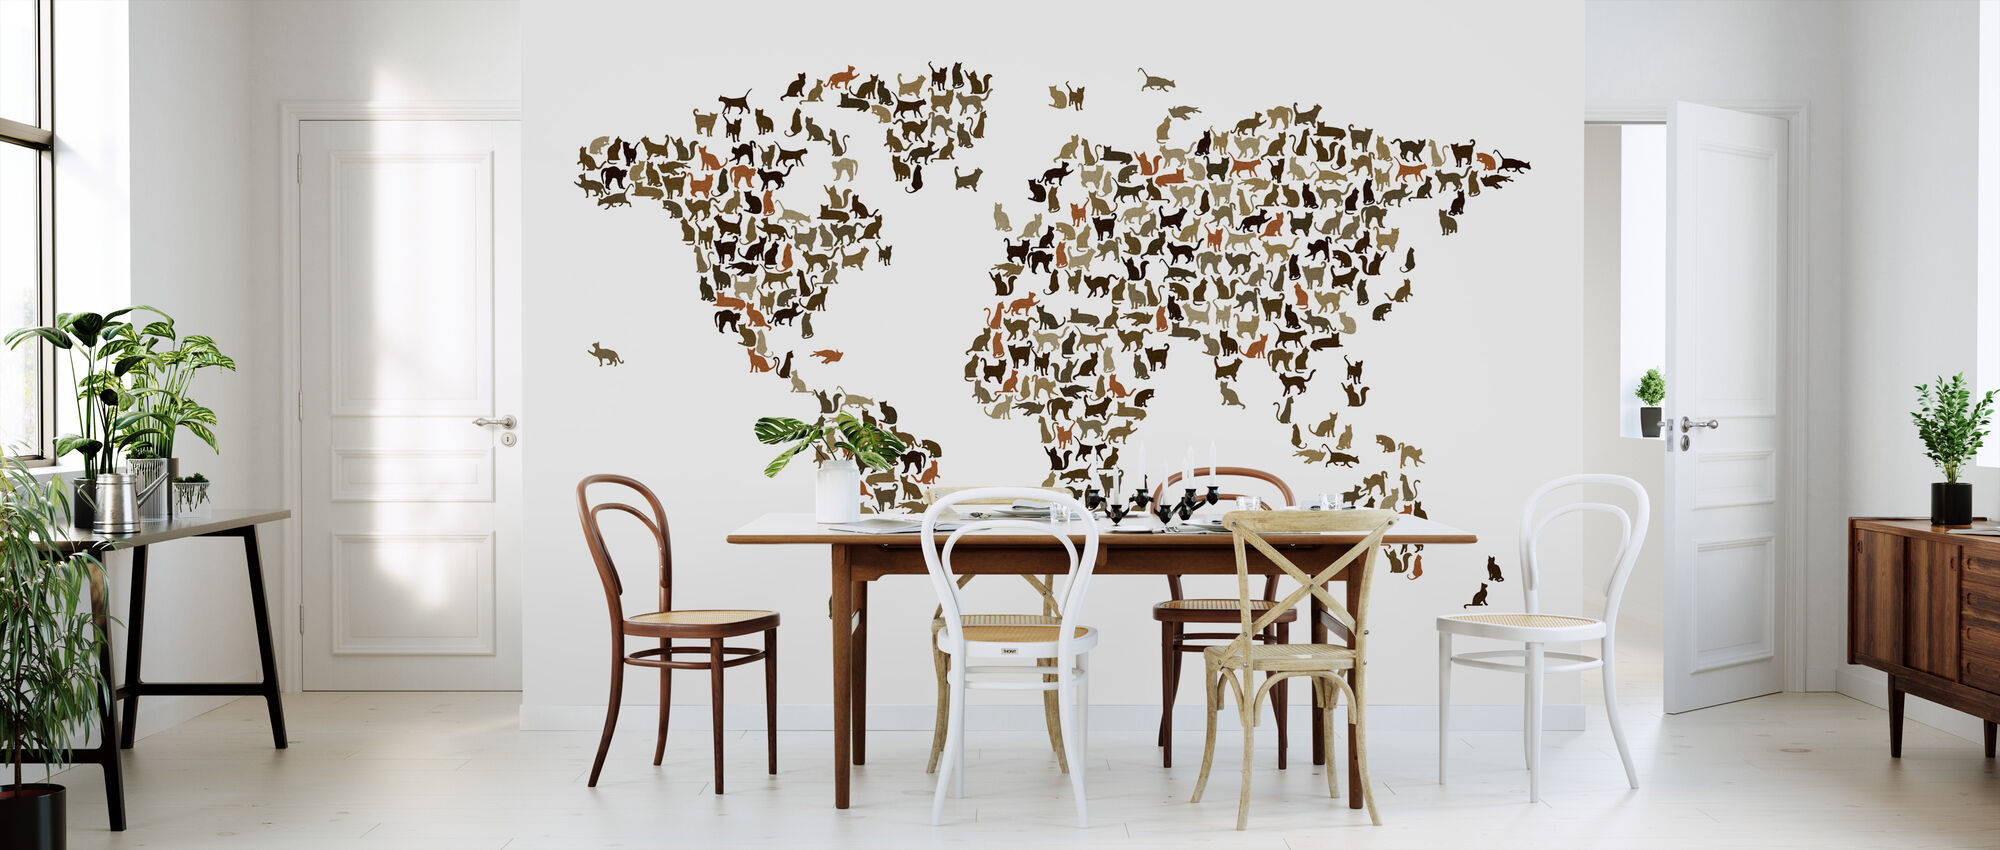 Cats World Map - Wallpaper - Kitchen